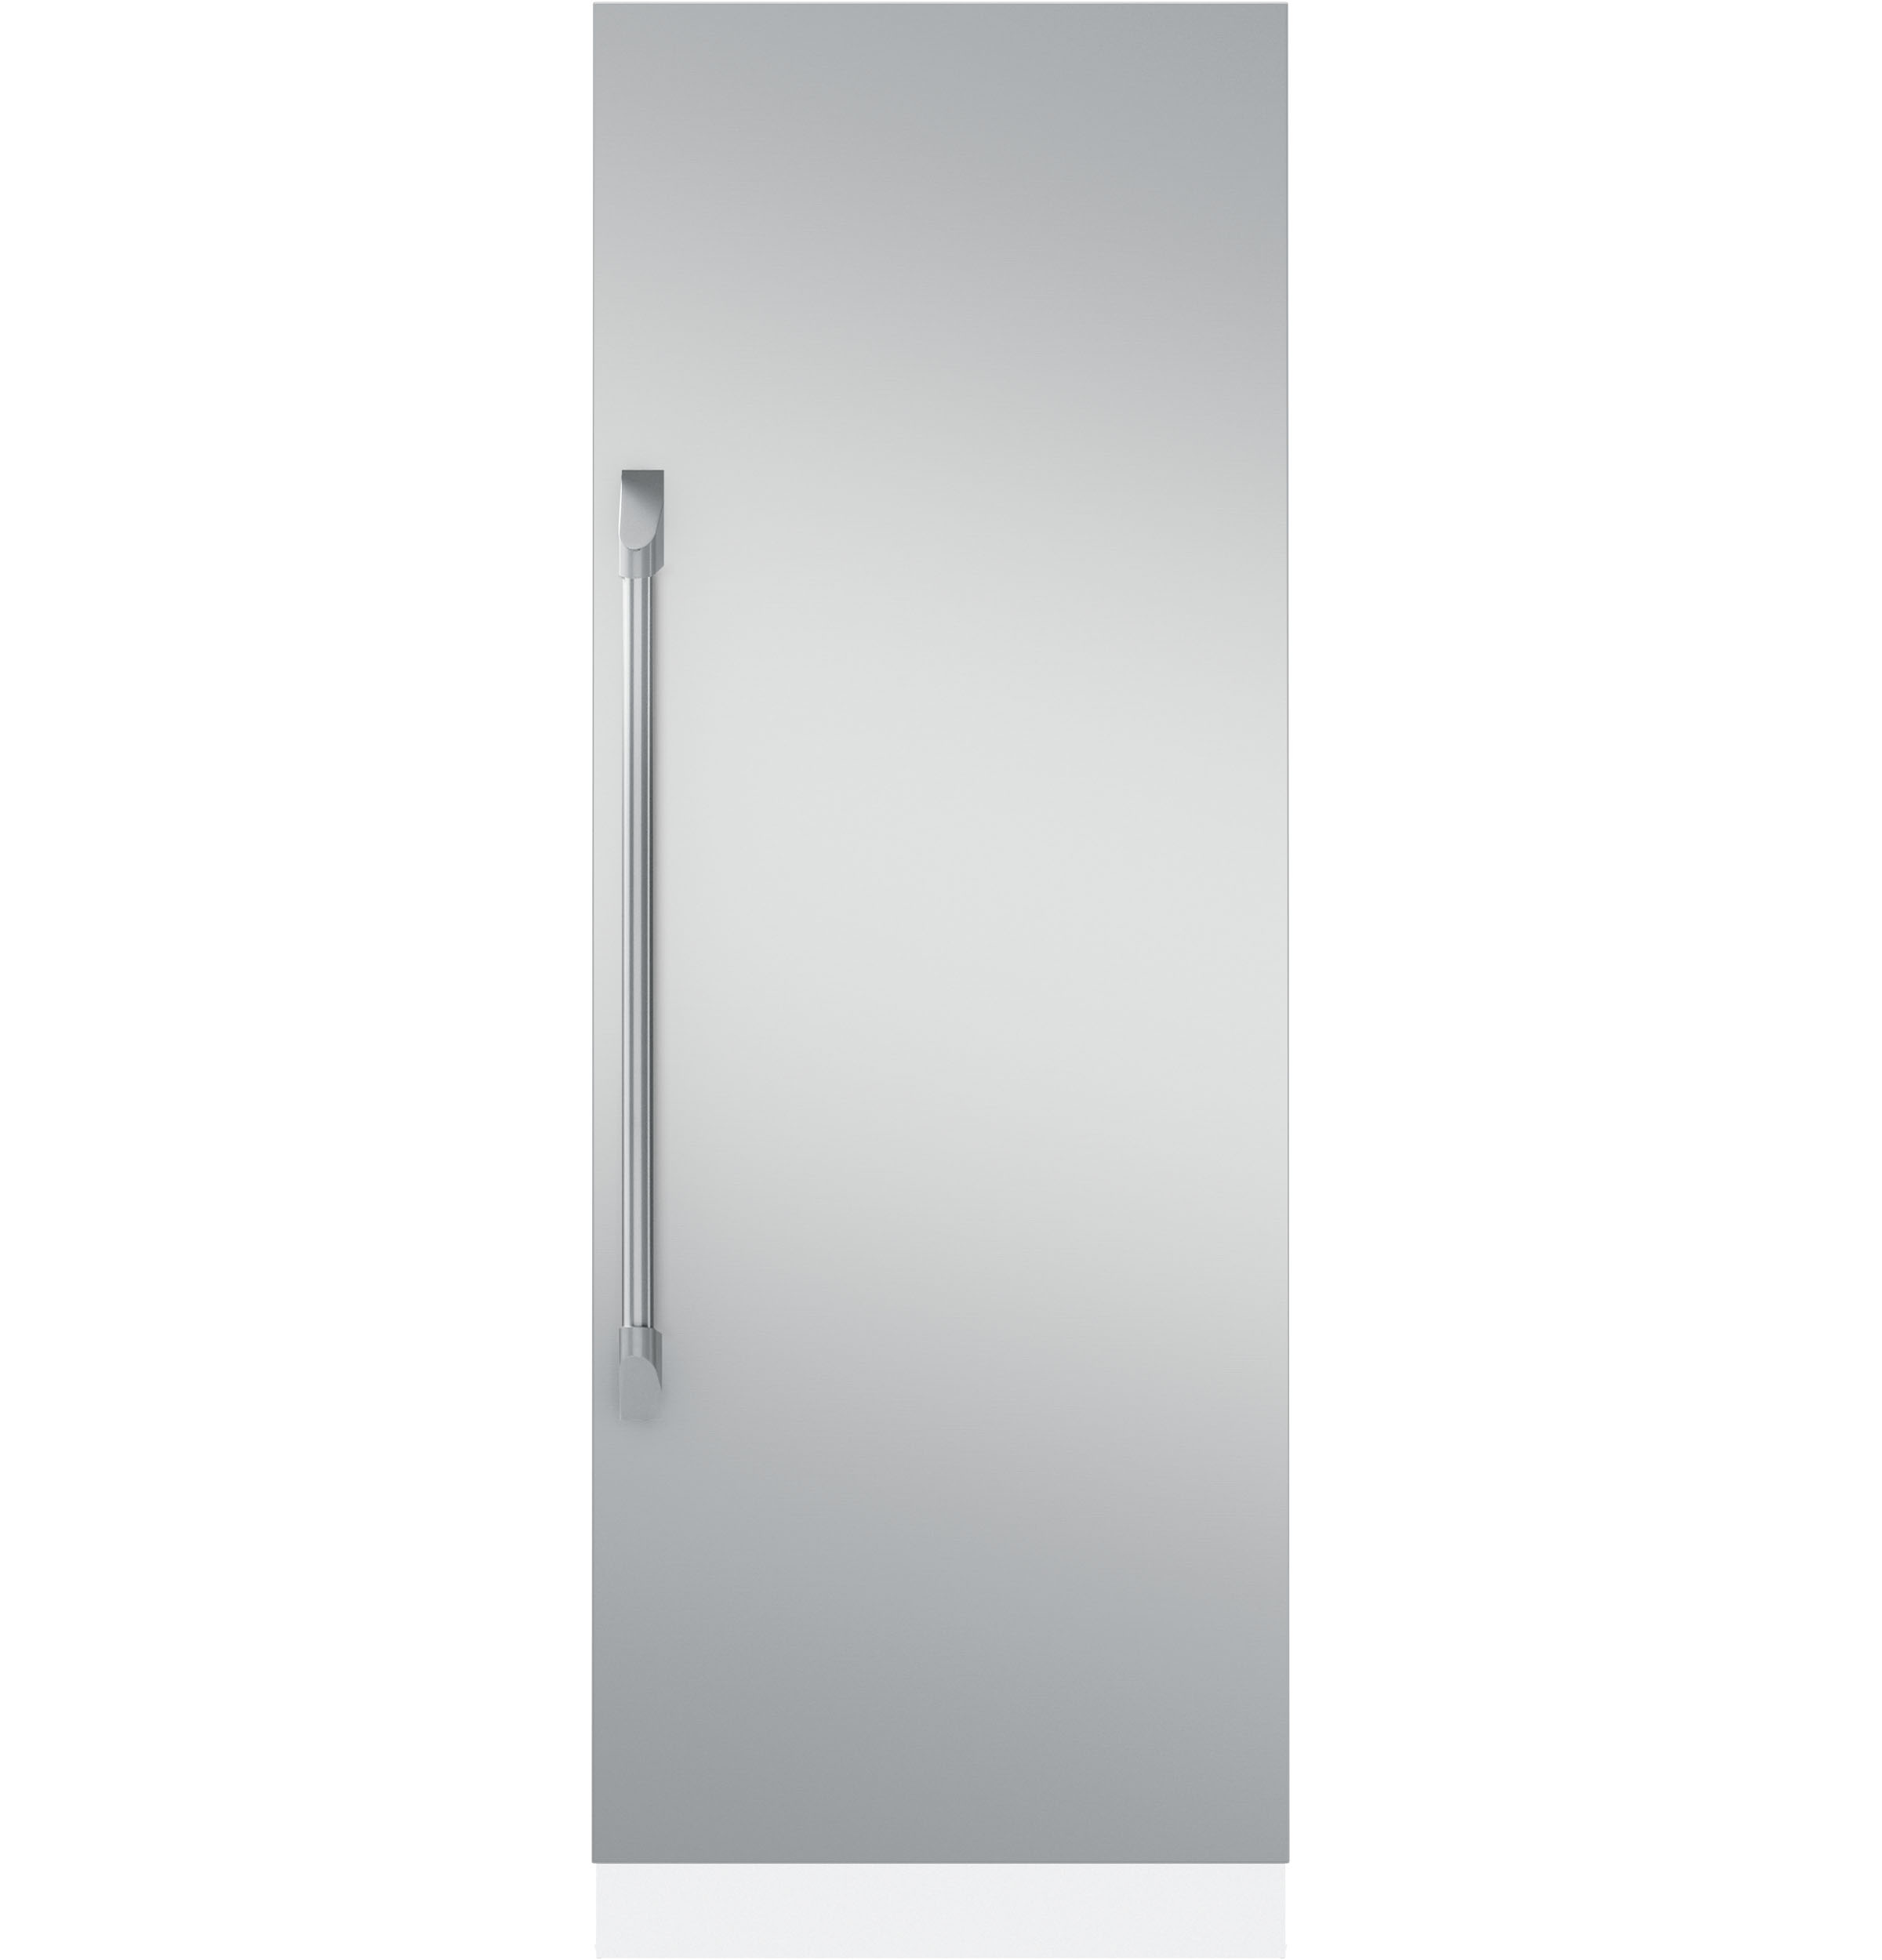 "Monogram 30"" Fully Integrated Refrigerator- Pro Stainless Steel Door Panel Kit"